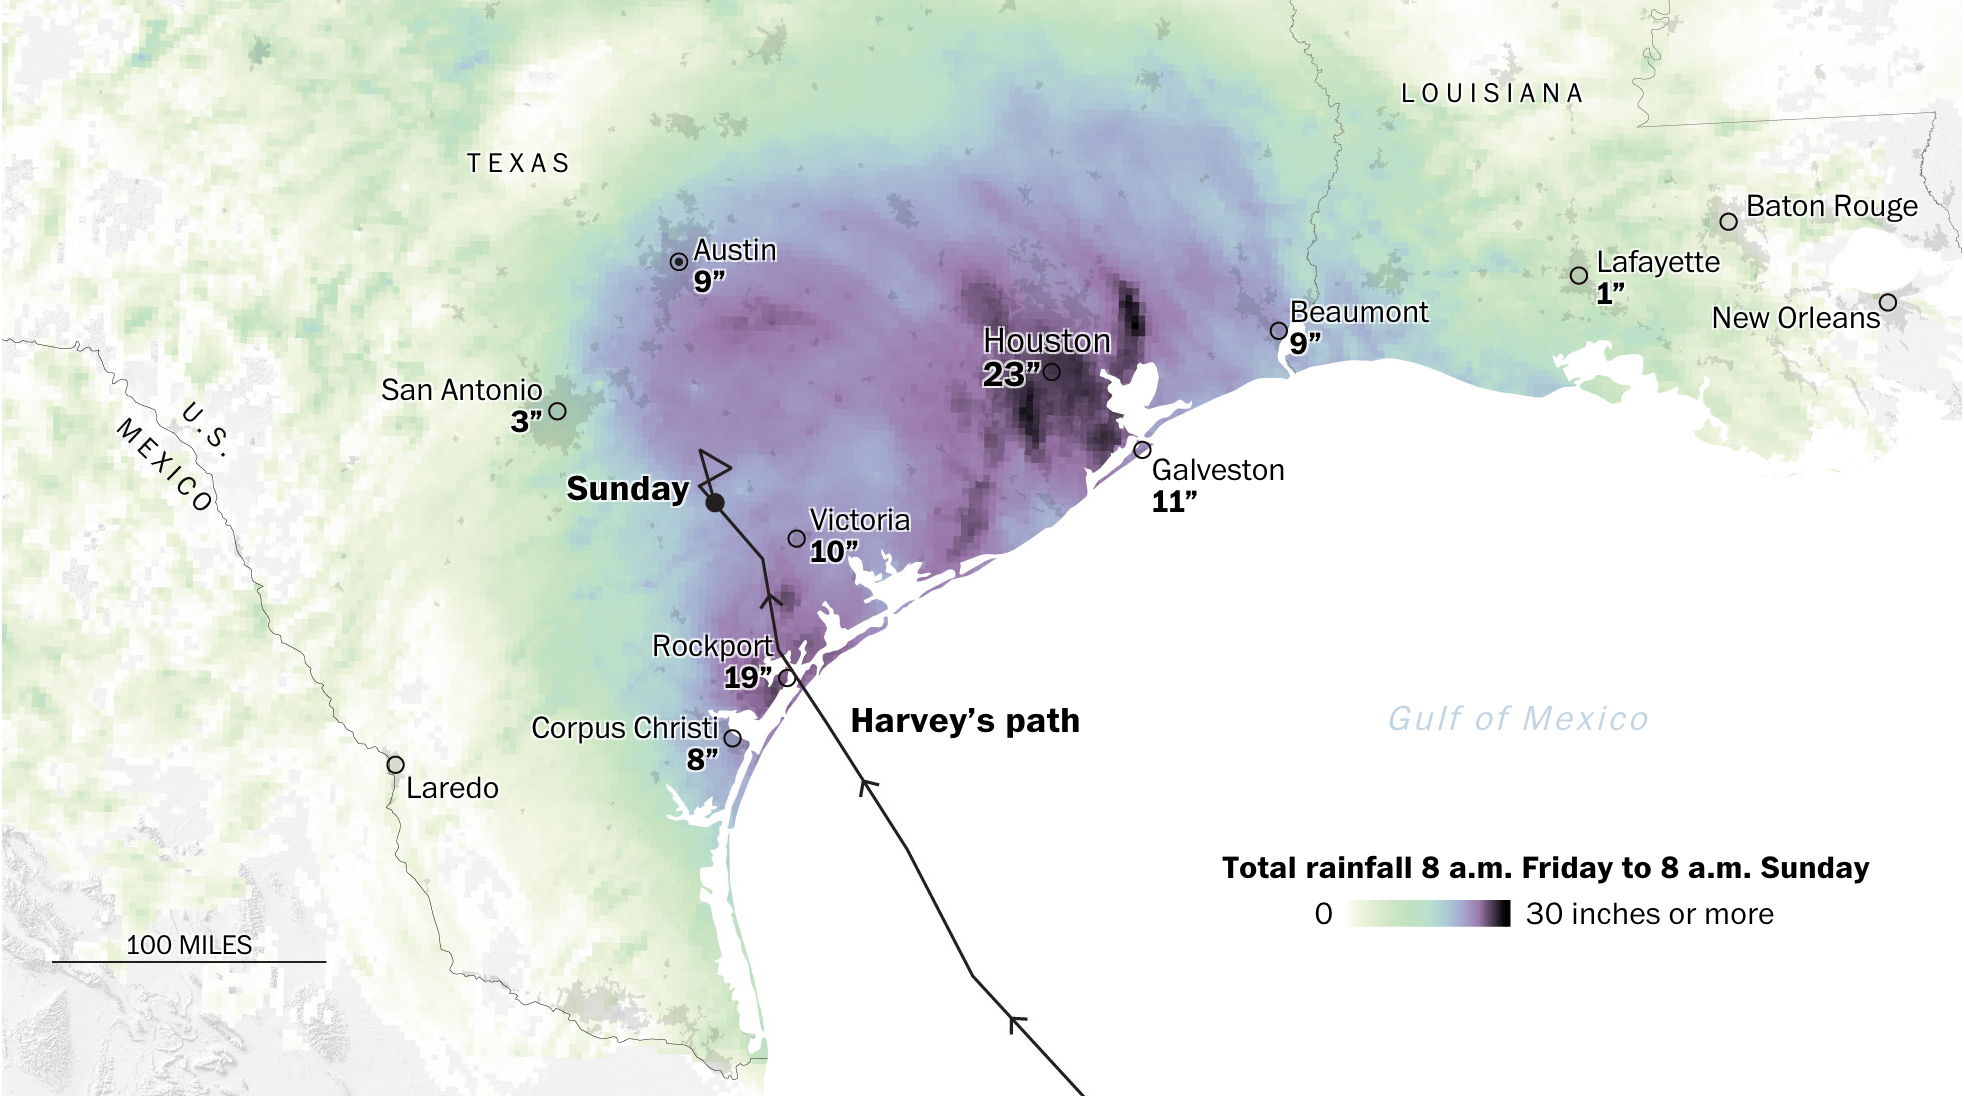 The Post's rainfall graphic